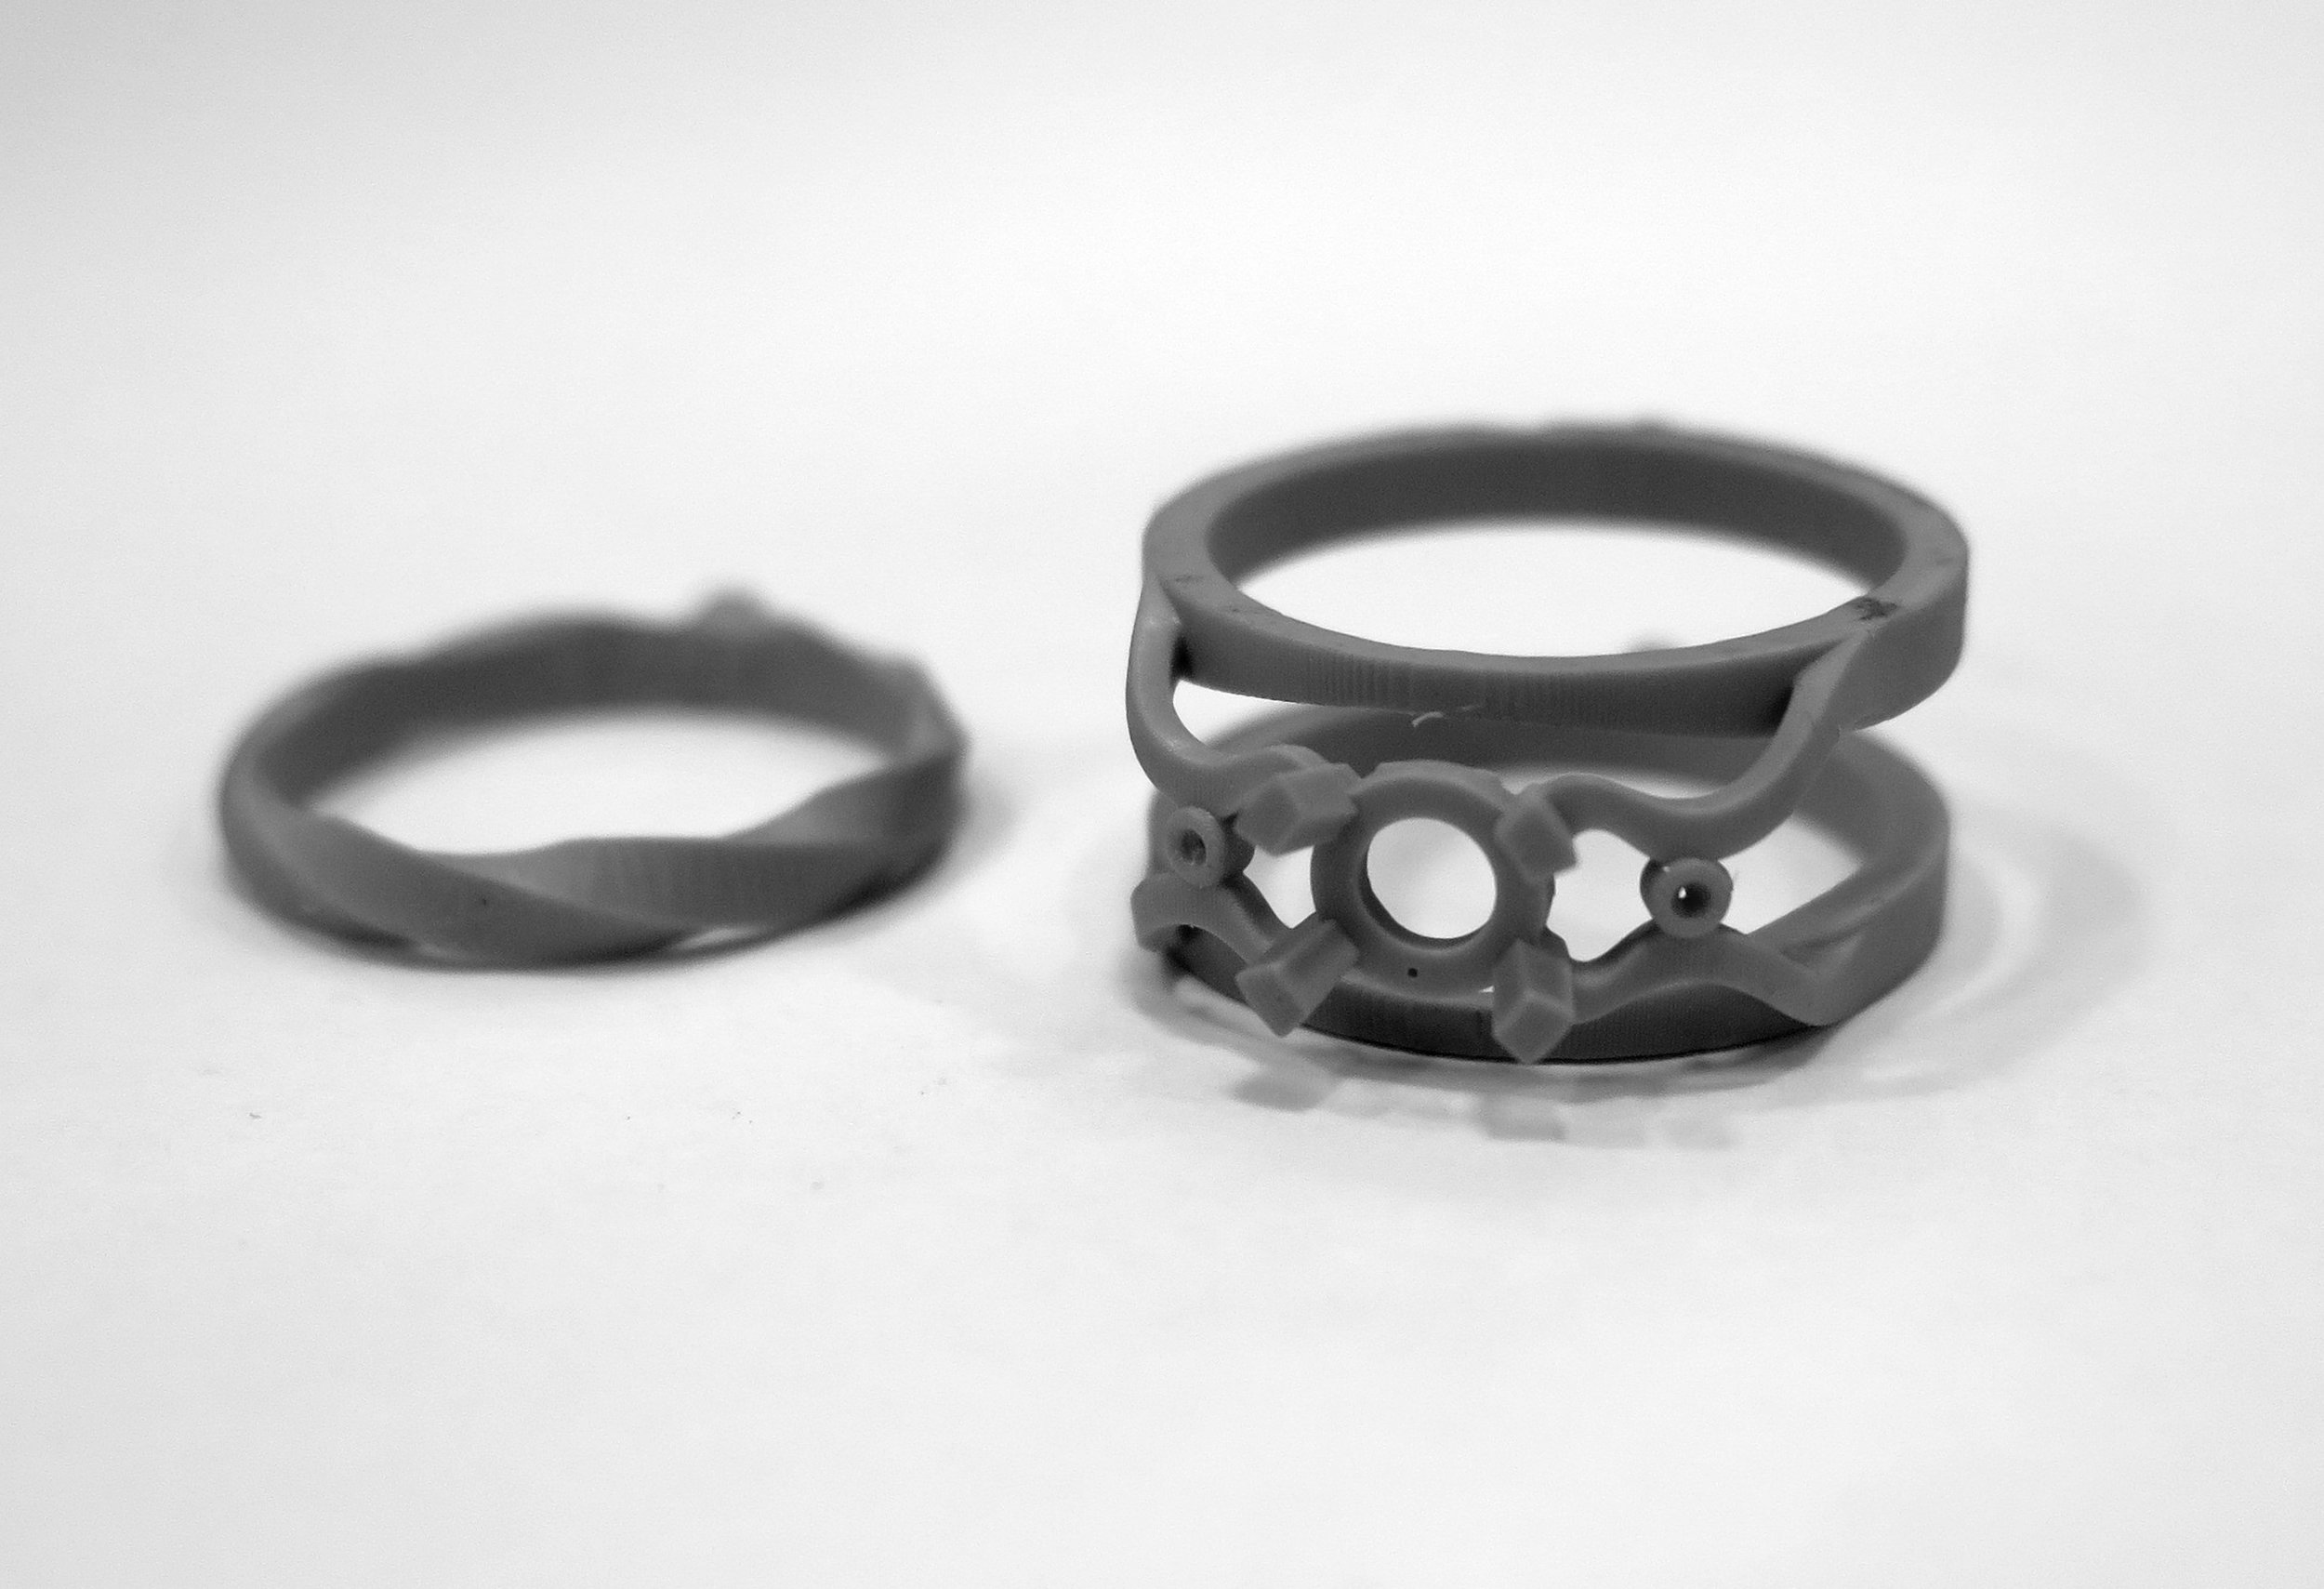 SLA 3-D printed ring ready for casting.